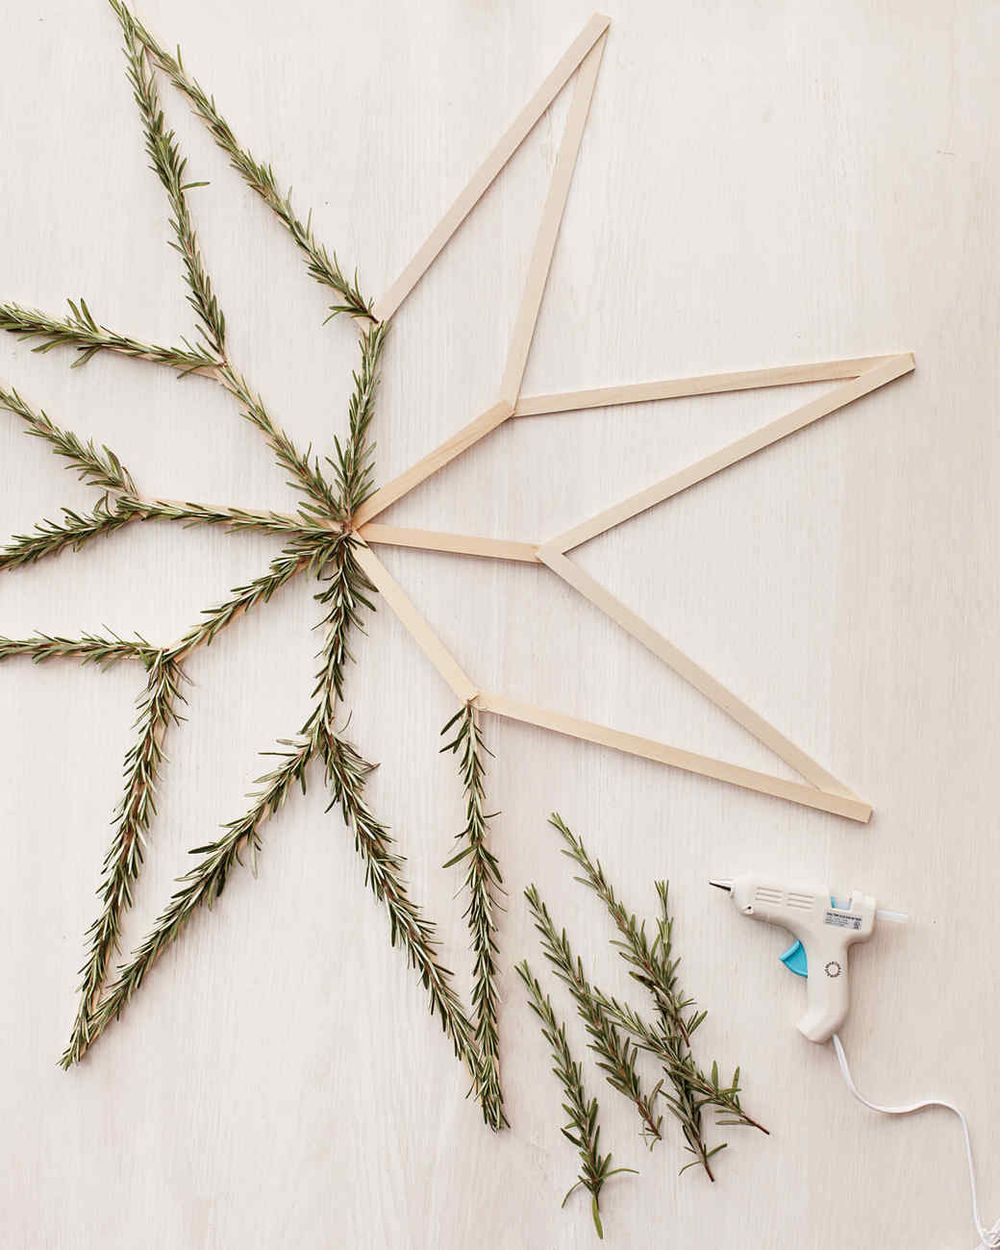 23 Diy Scandinavian Christmas Decorations With Nordic Hygge Vibes